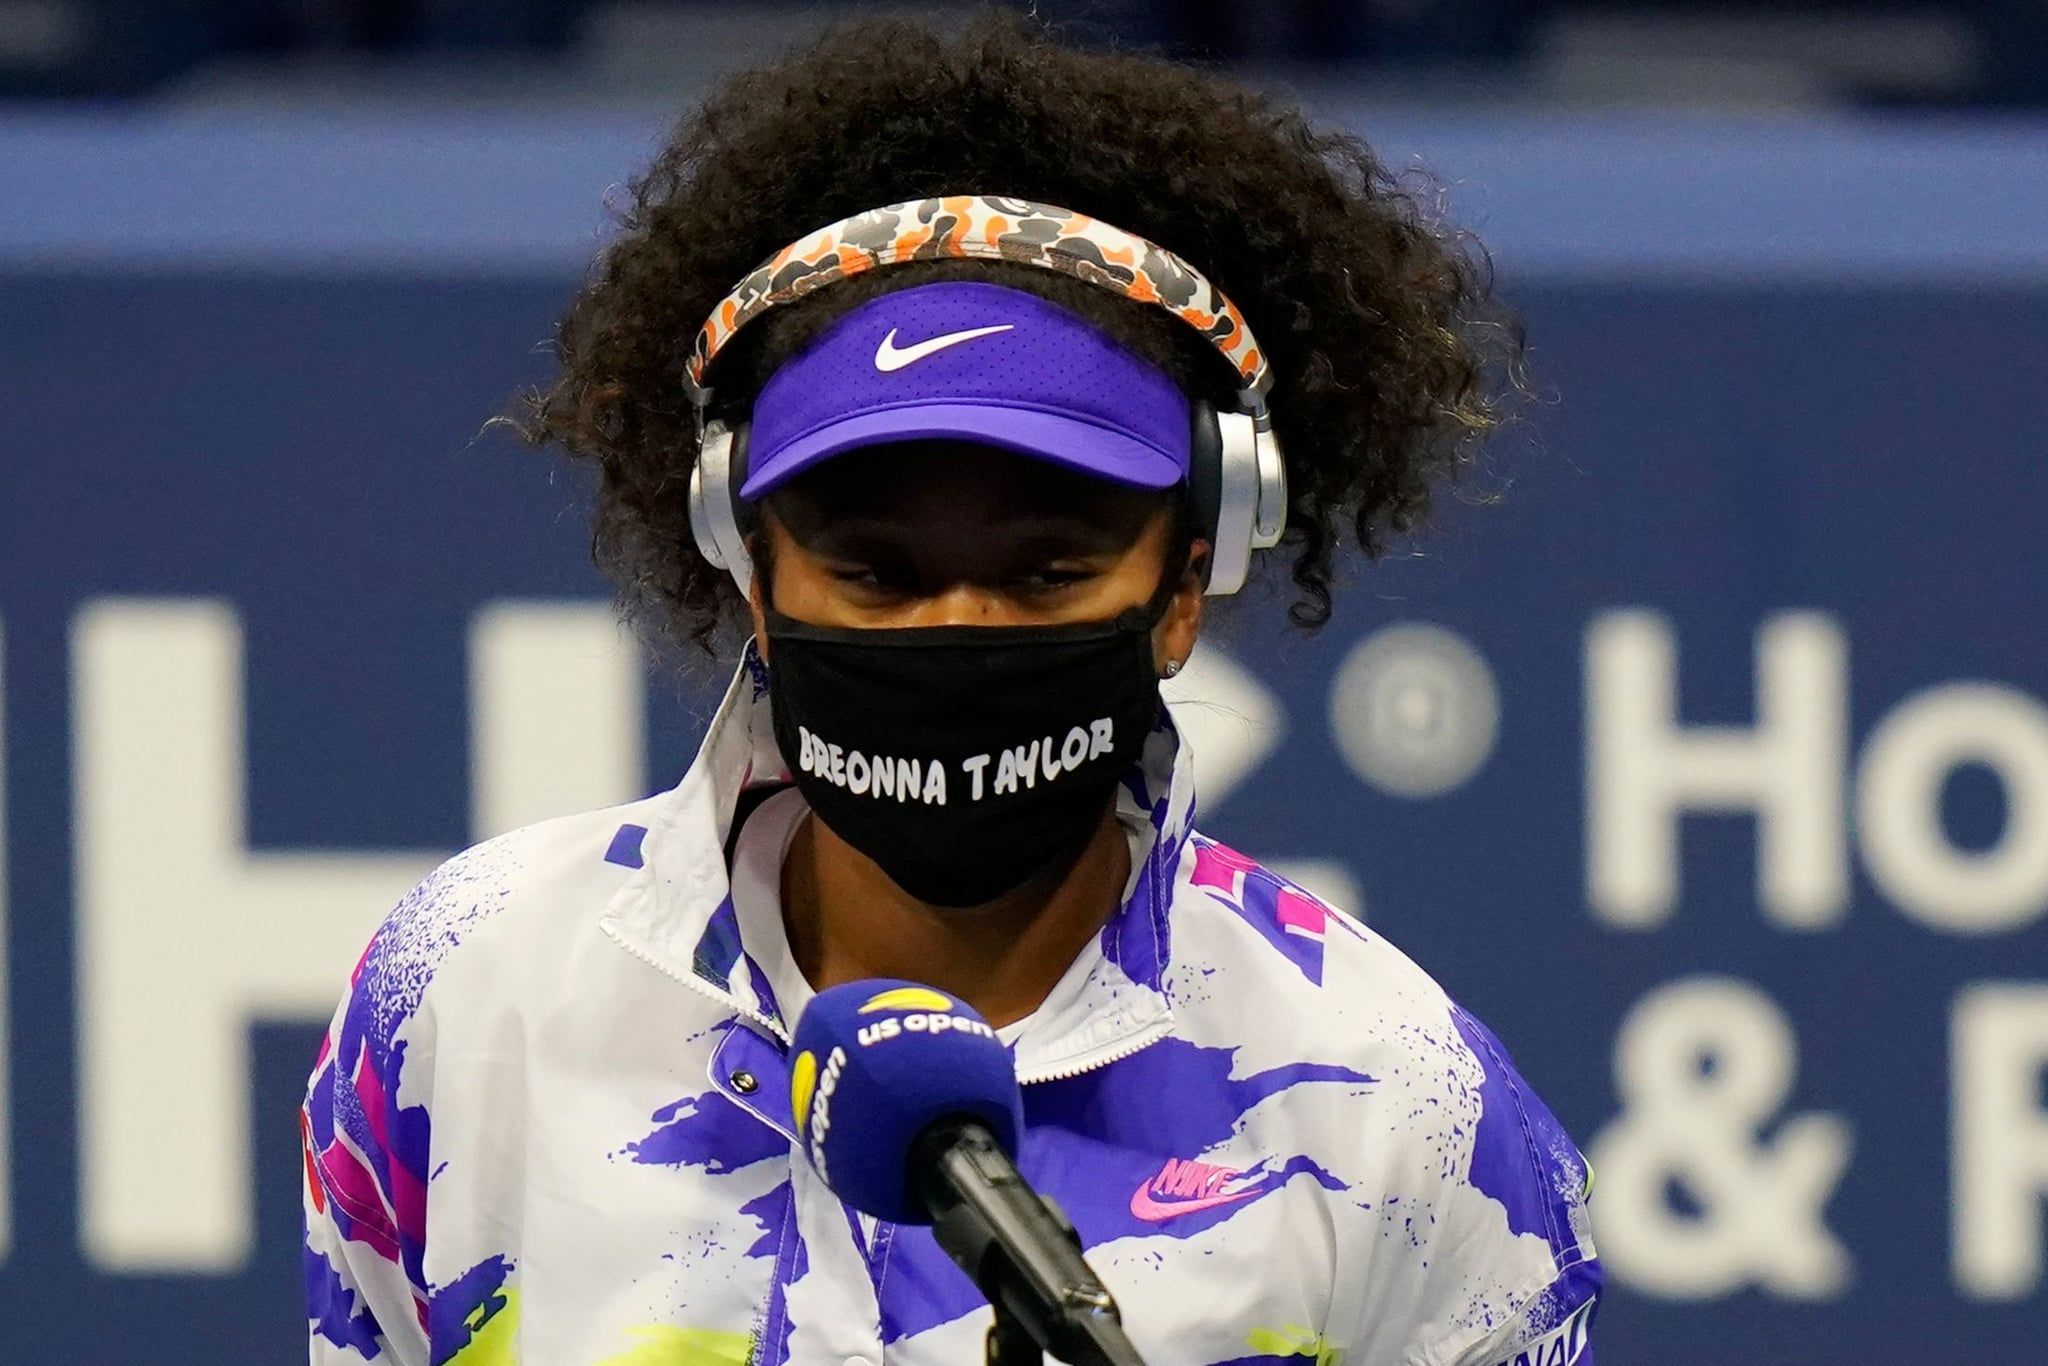 Naomi Osaka Wears A Breonna Taylor Mask For Round 1 Of The Us Open In 2020 Diy Hair Mask Taylor S Naomi